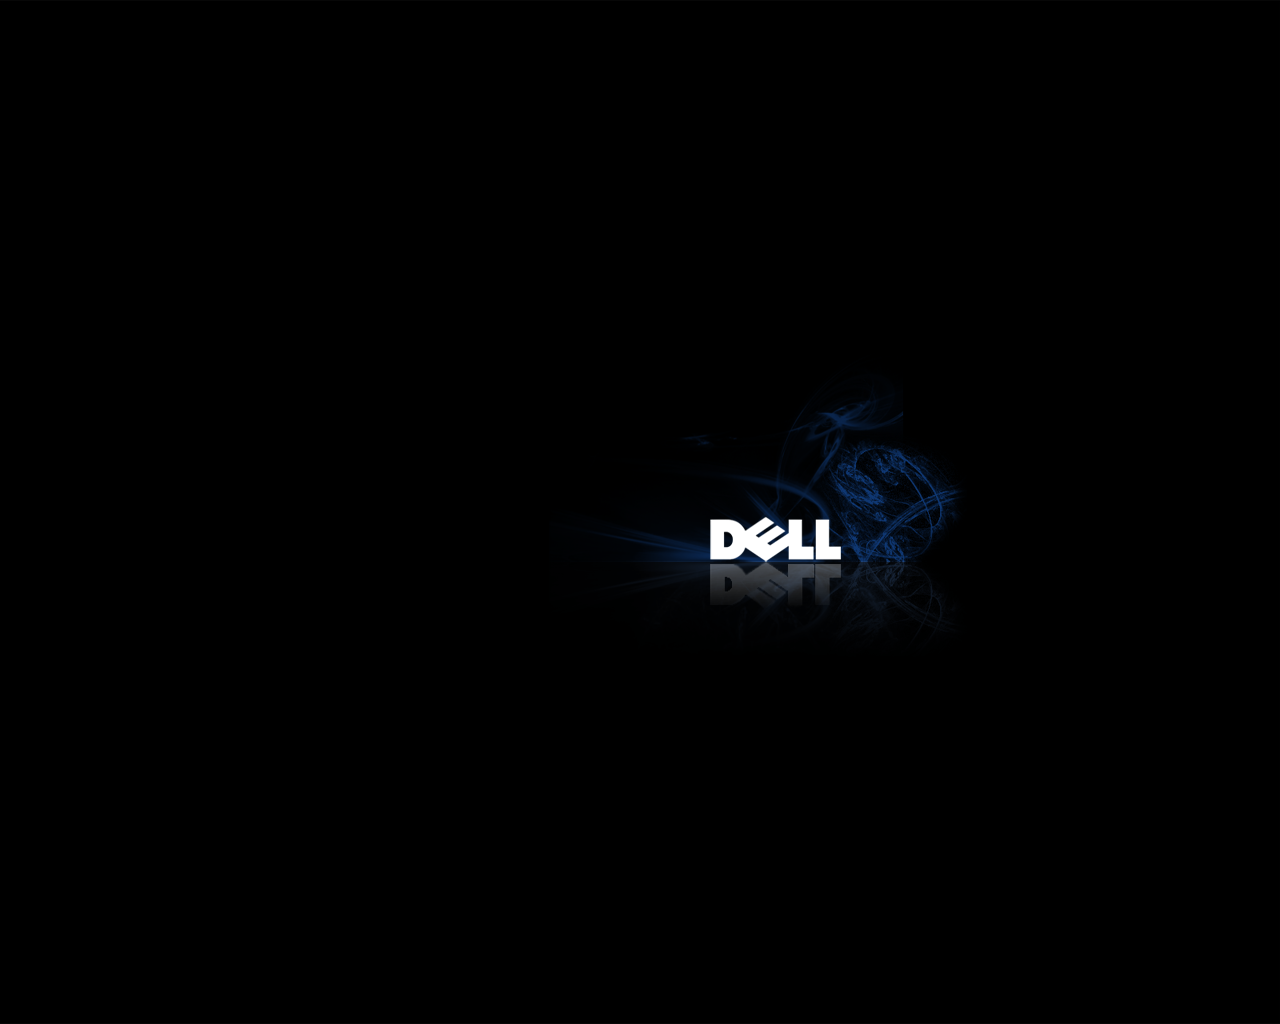 Dell Laptop Wallpapers Top Free Dell Laptop Backgrounds Wallpaperaccess